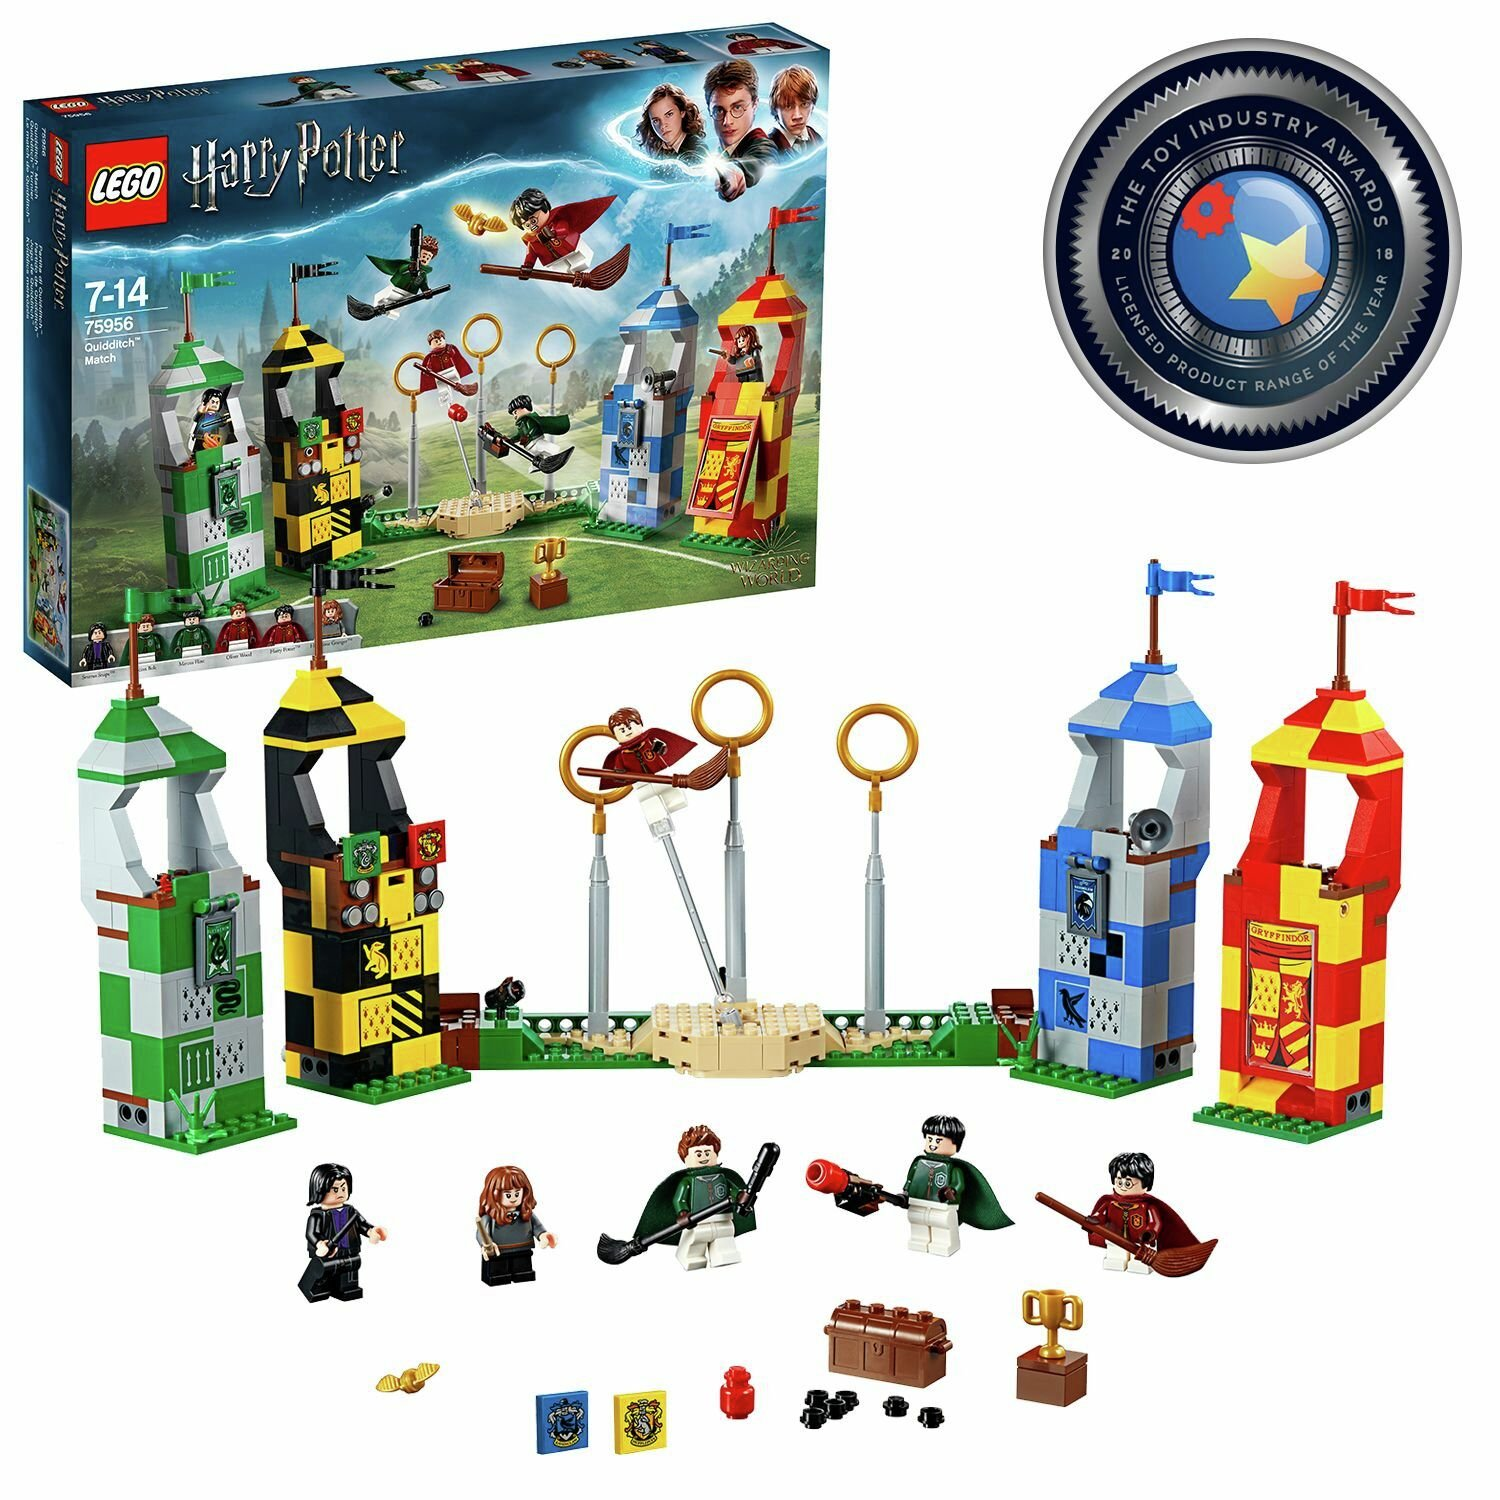 LEGO Harry Potter Quidditch Match - 75956